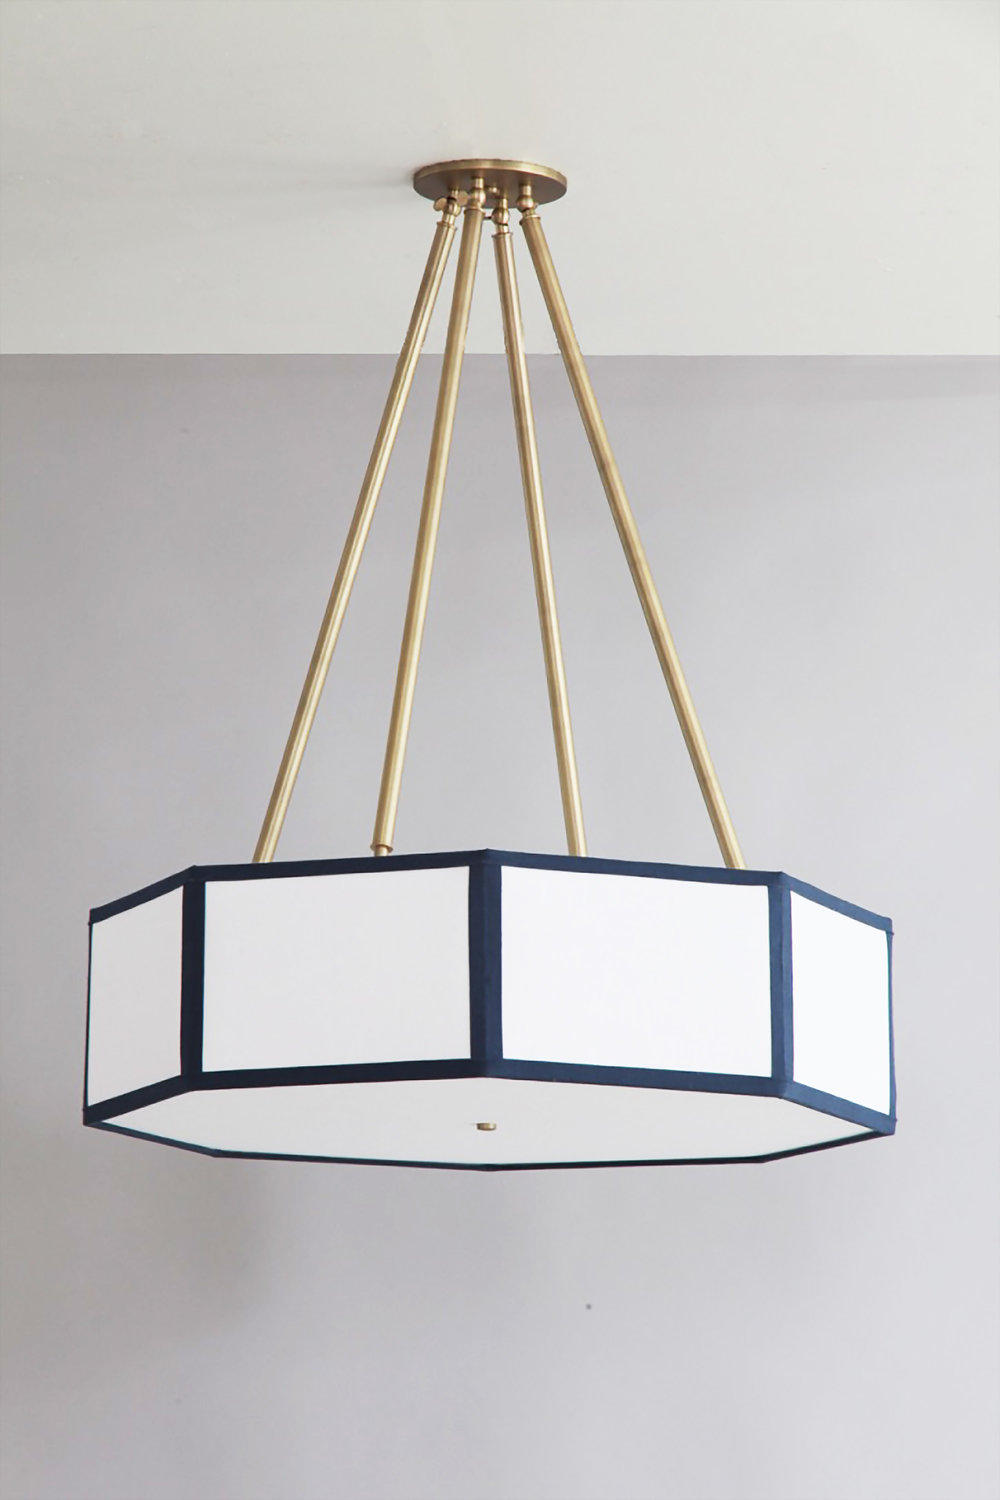 Hexagon + Octagon_C-205_Octagin Lantern Pendant with Four Tapered Stems_Satin Brass_ White and Navy_off.jpg